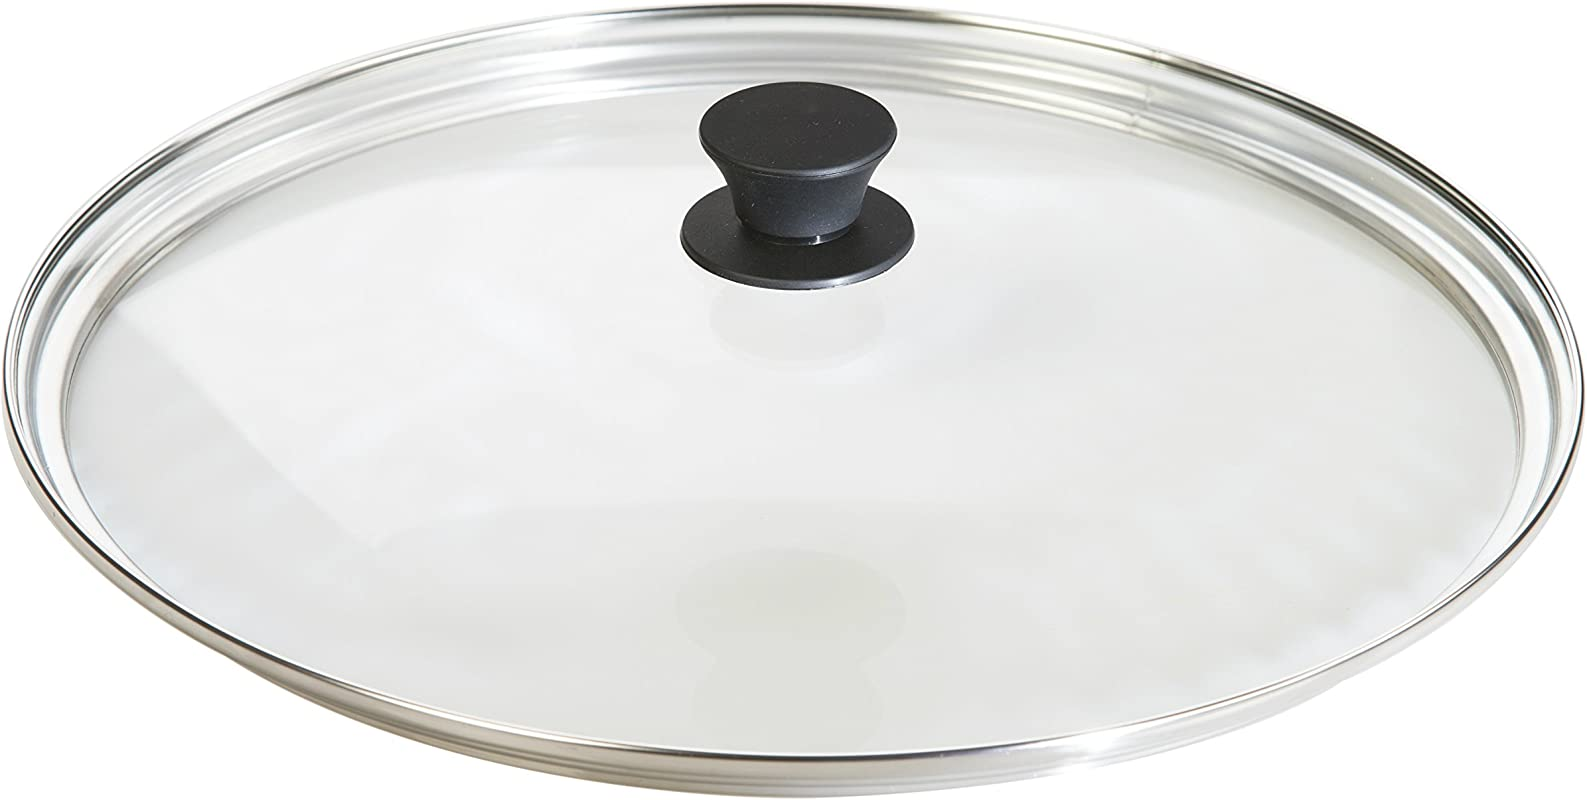 Lodge Tempered Glass Lid 15 Inch Fits Lodge 15 Inch Cast Iron Skillets And 14 Inch Cast Iron Woks